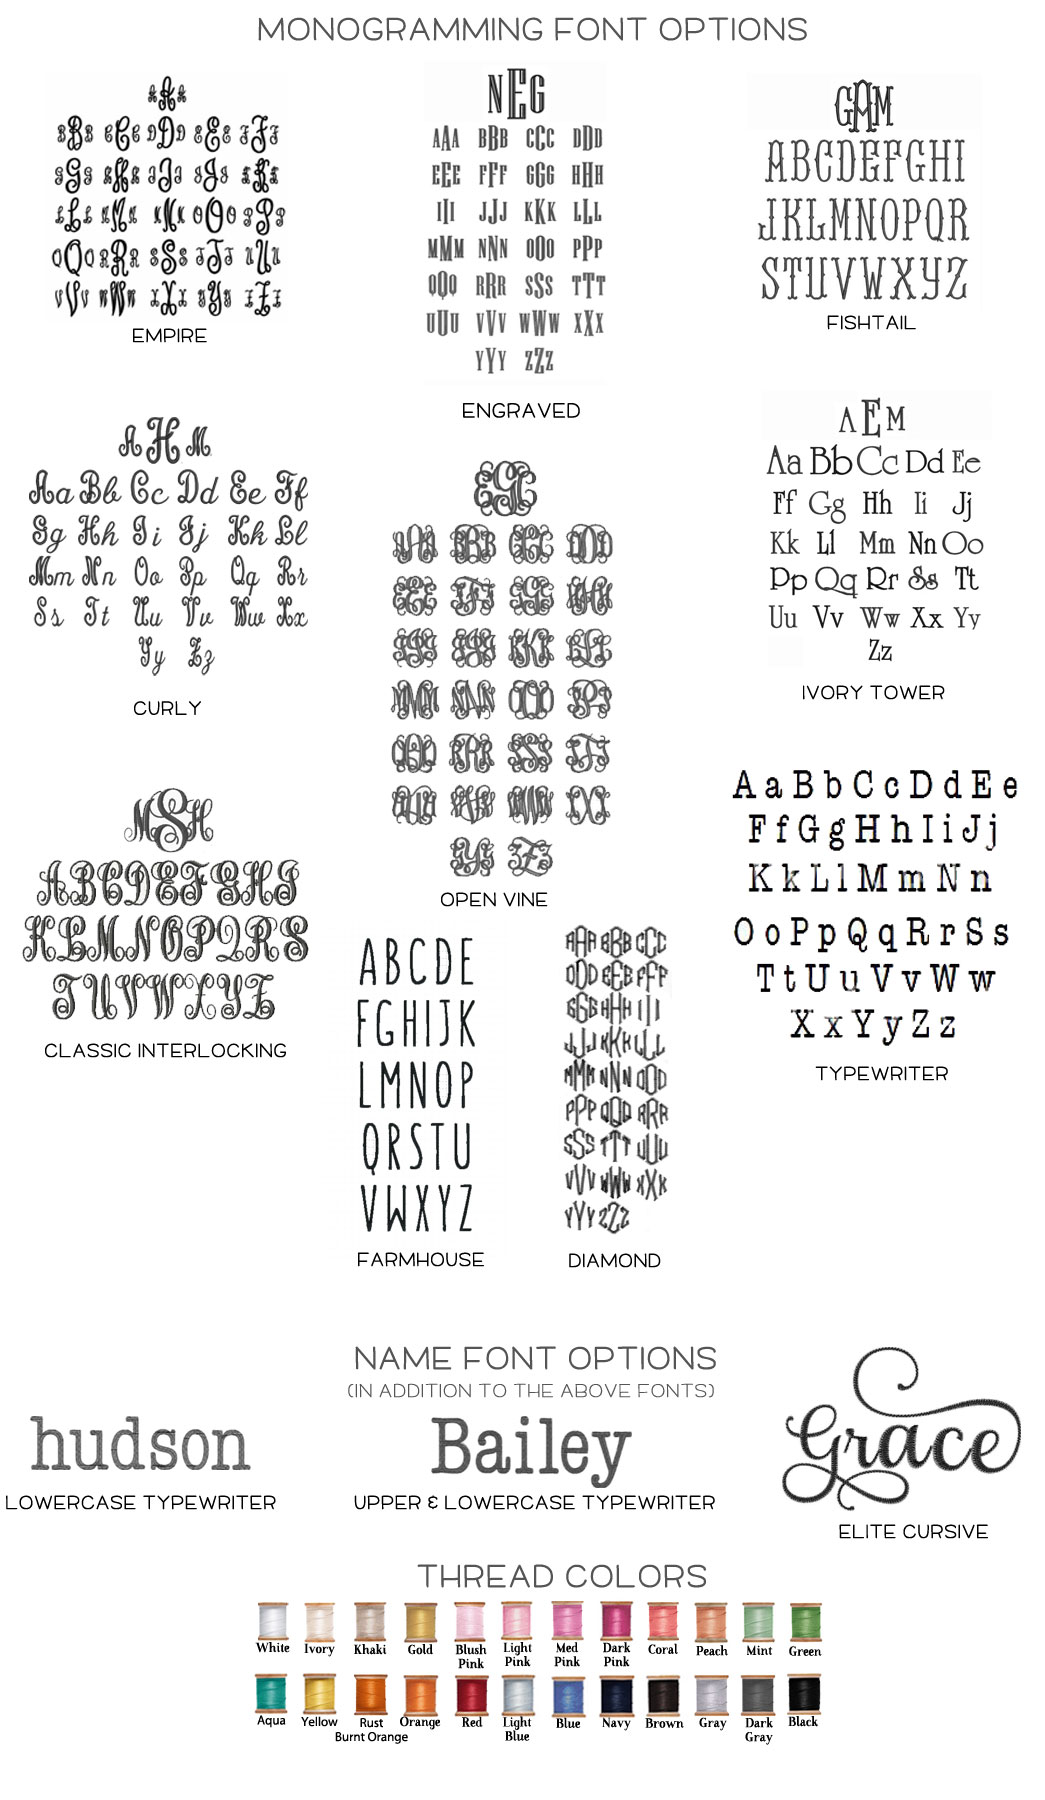 monogramming options